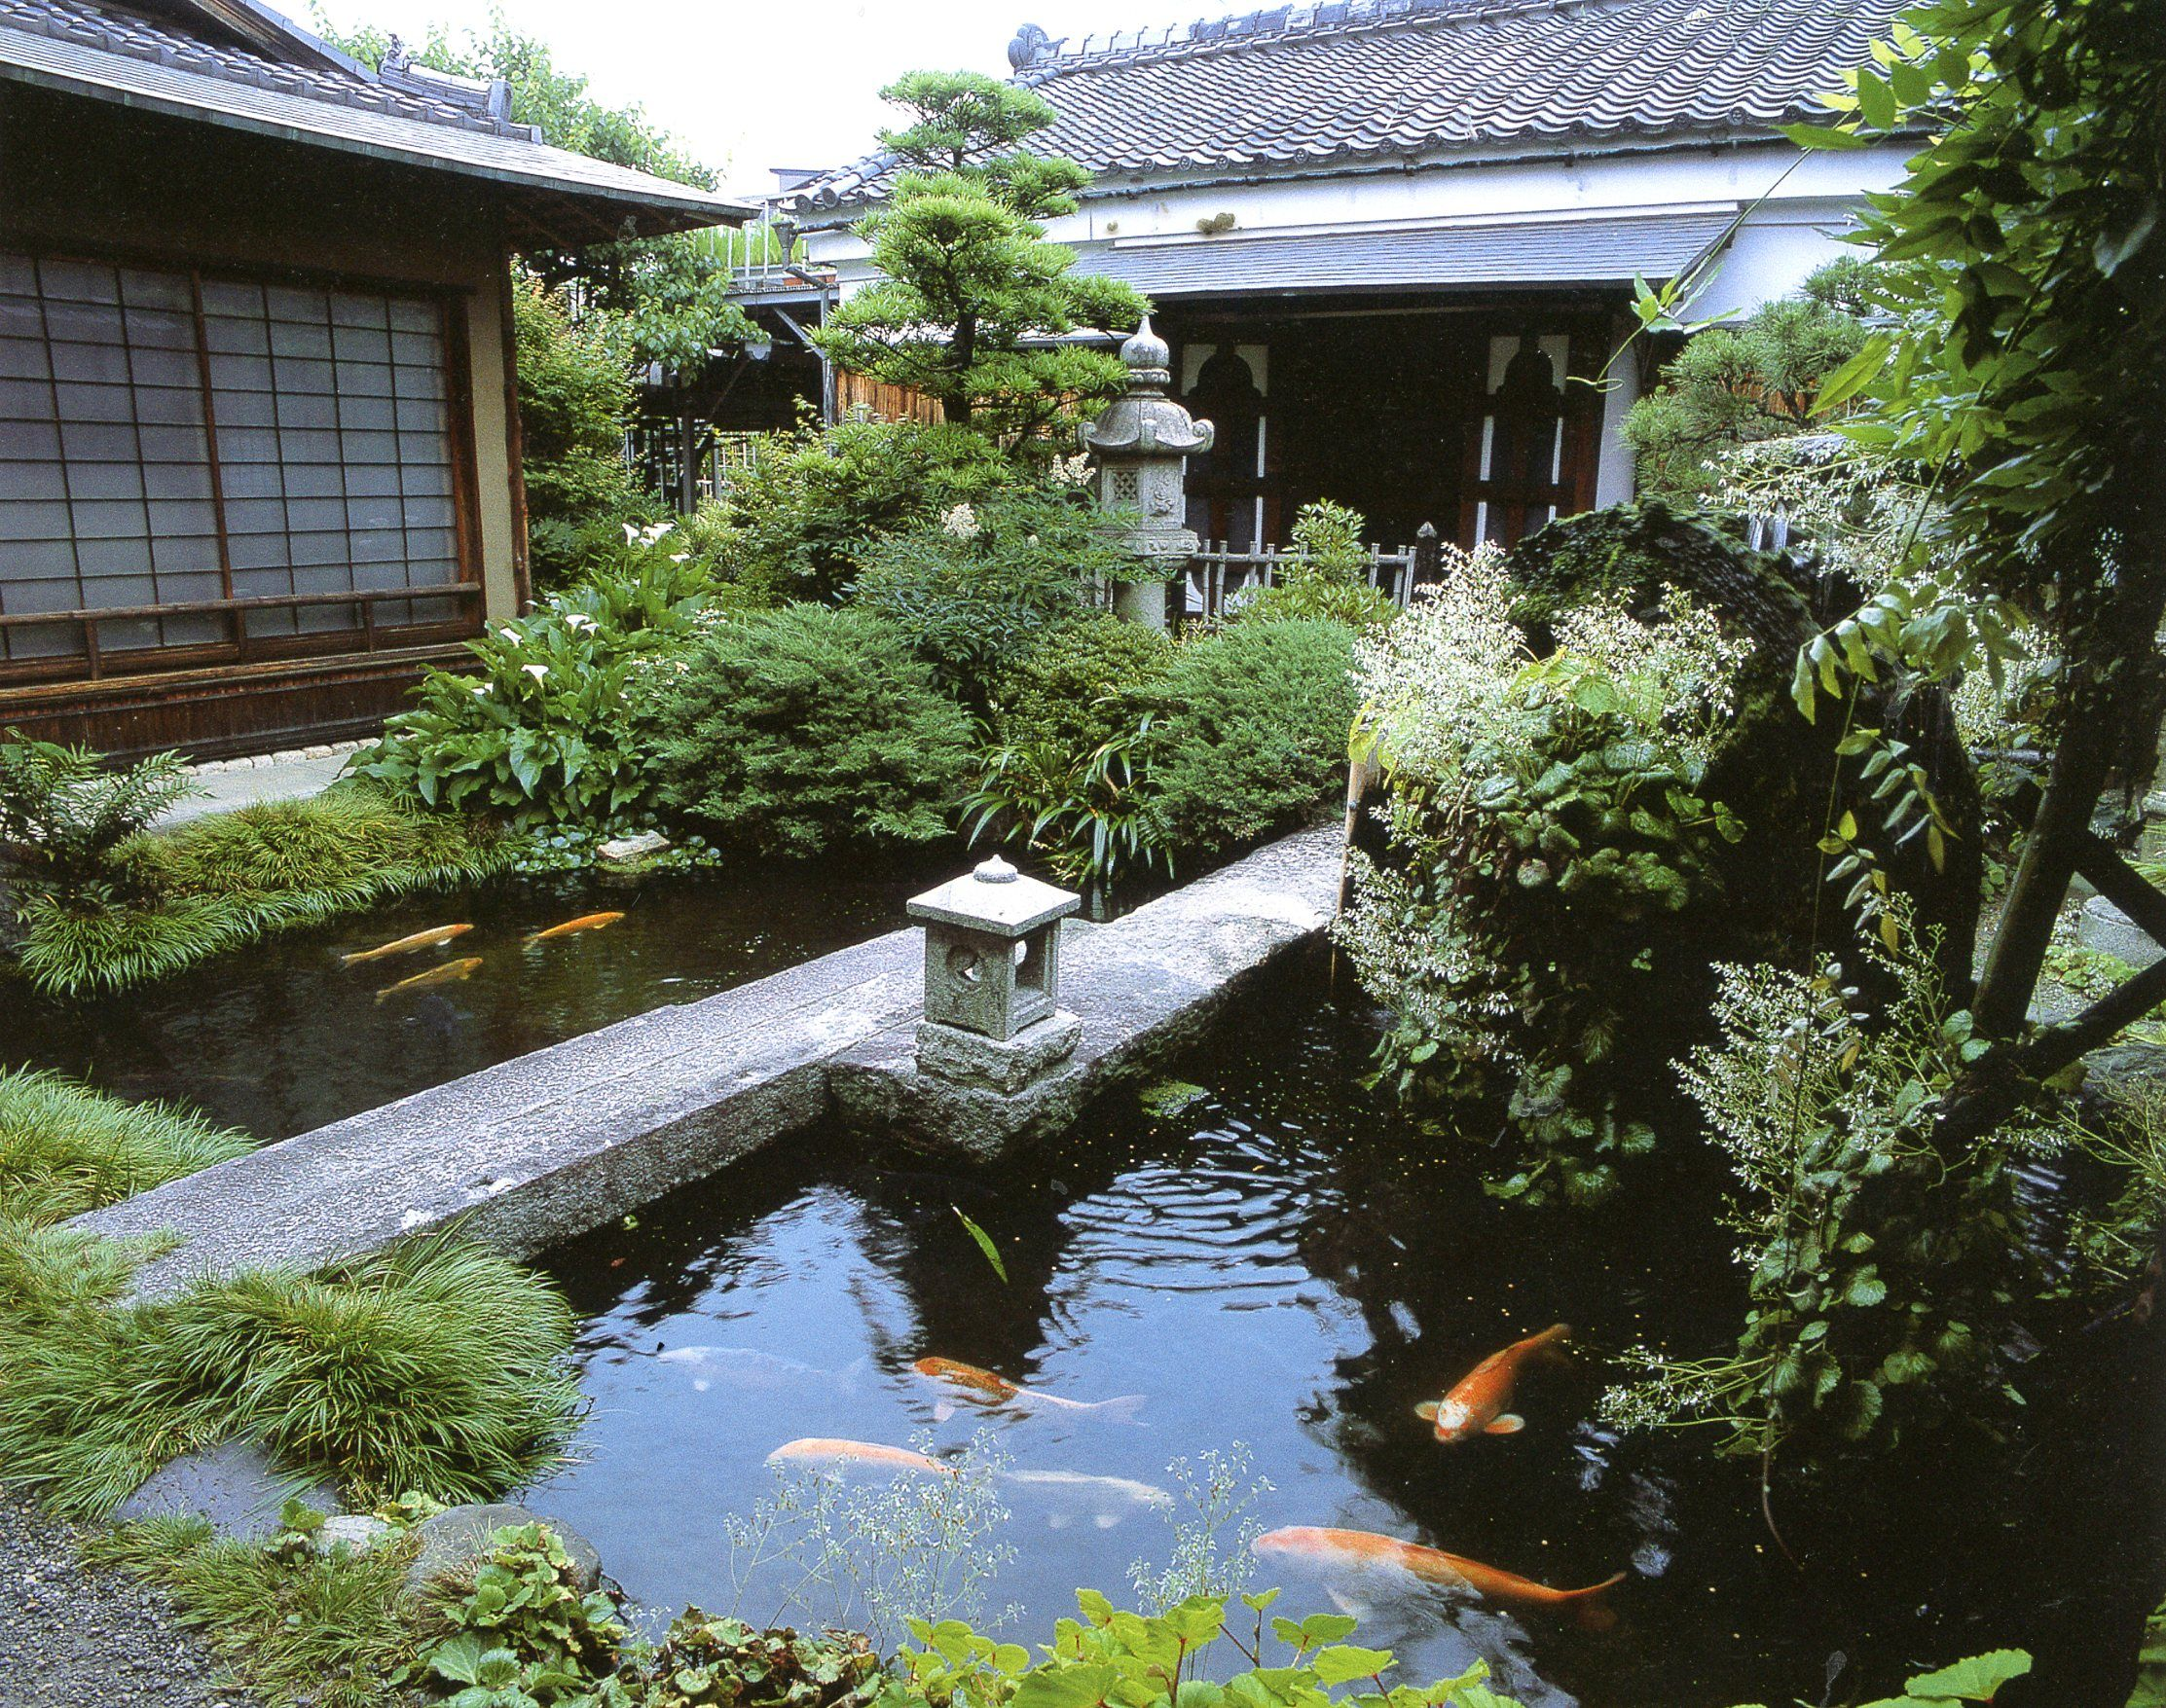 d07a4800f9548b72071d0007ffd64b1e - Landscapes For Small Spaces Japanese Courtyard Gardens